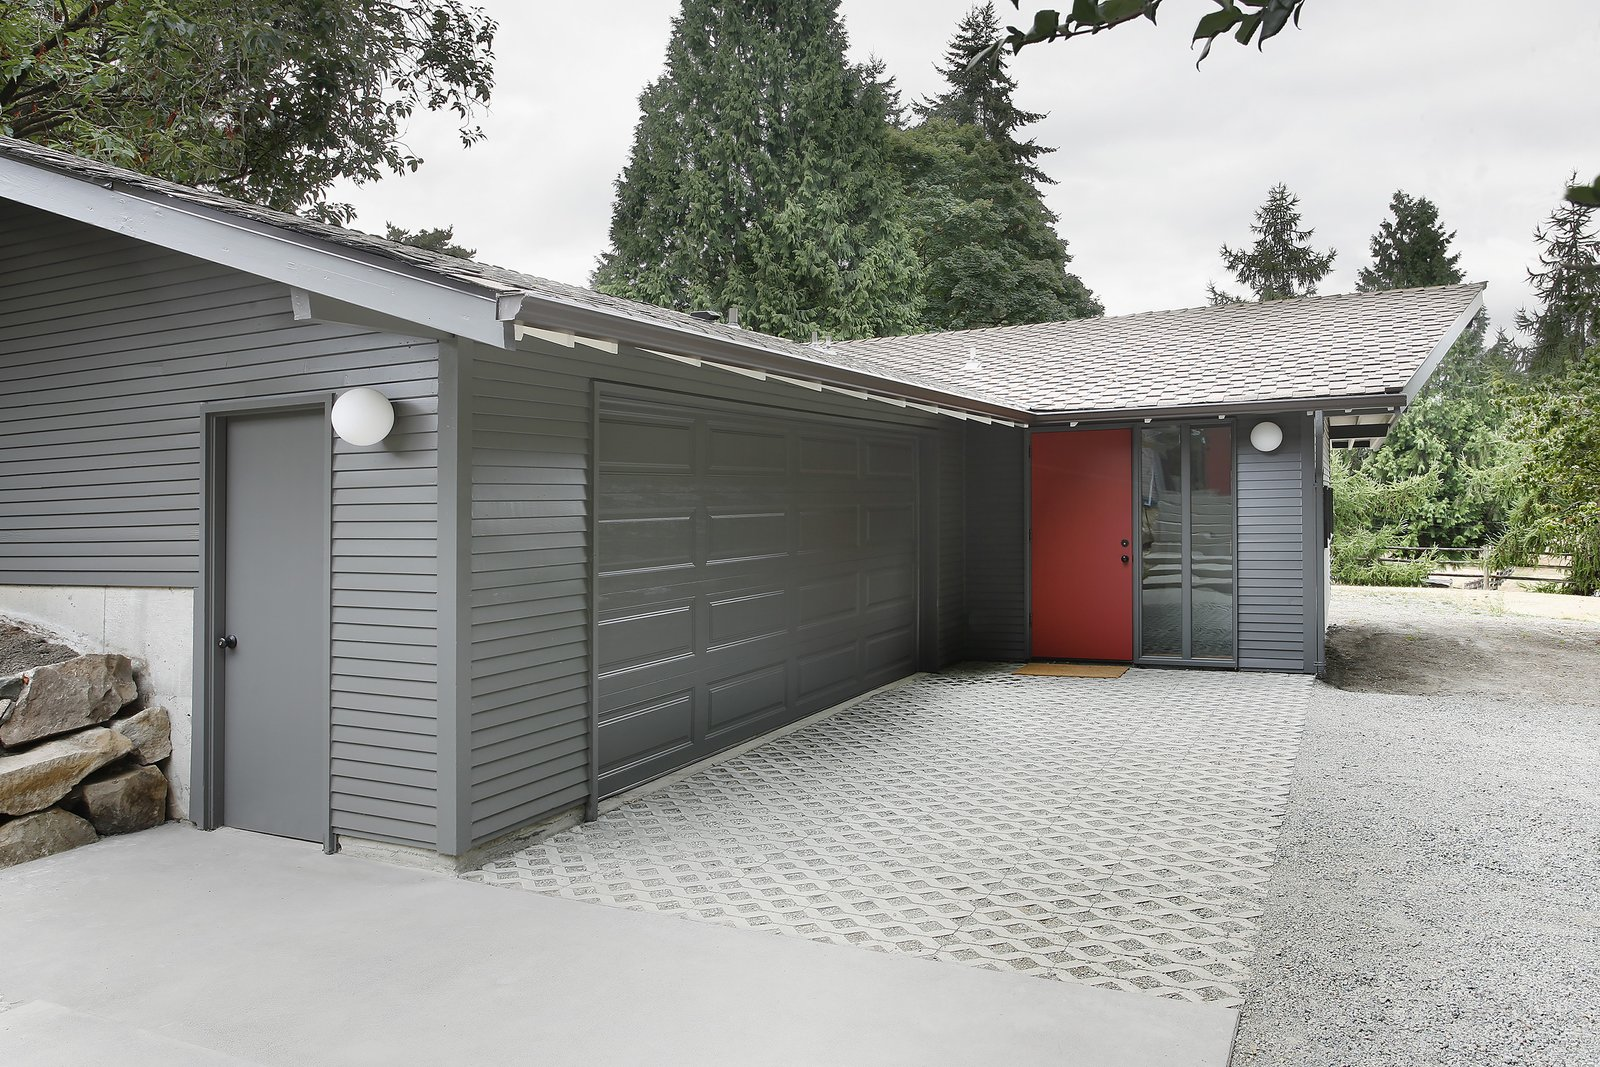 """""""The stable/garage was built with two intersecting gable roof forms,"""" Schaer says, which didn't match up with the inteiror spaces within. """"In order to provide a unified, singular main space, we dropped a flat ceiling at the entrance and linked it up with the main gable visible from the street.""""  Horse Stable Studio by Kelly Dawson"""